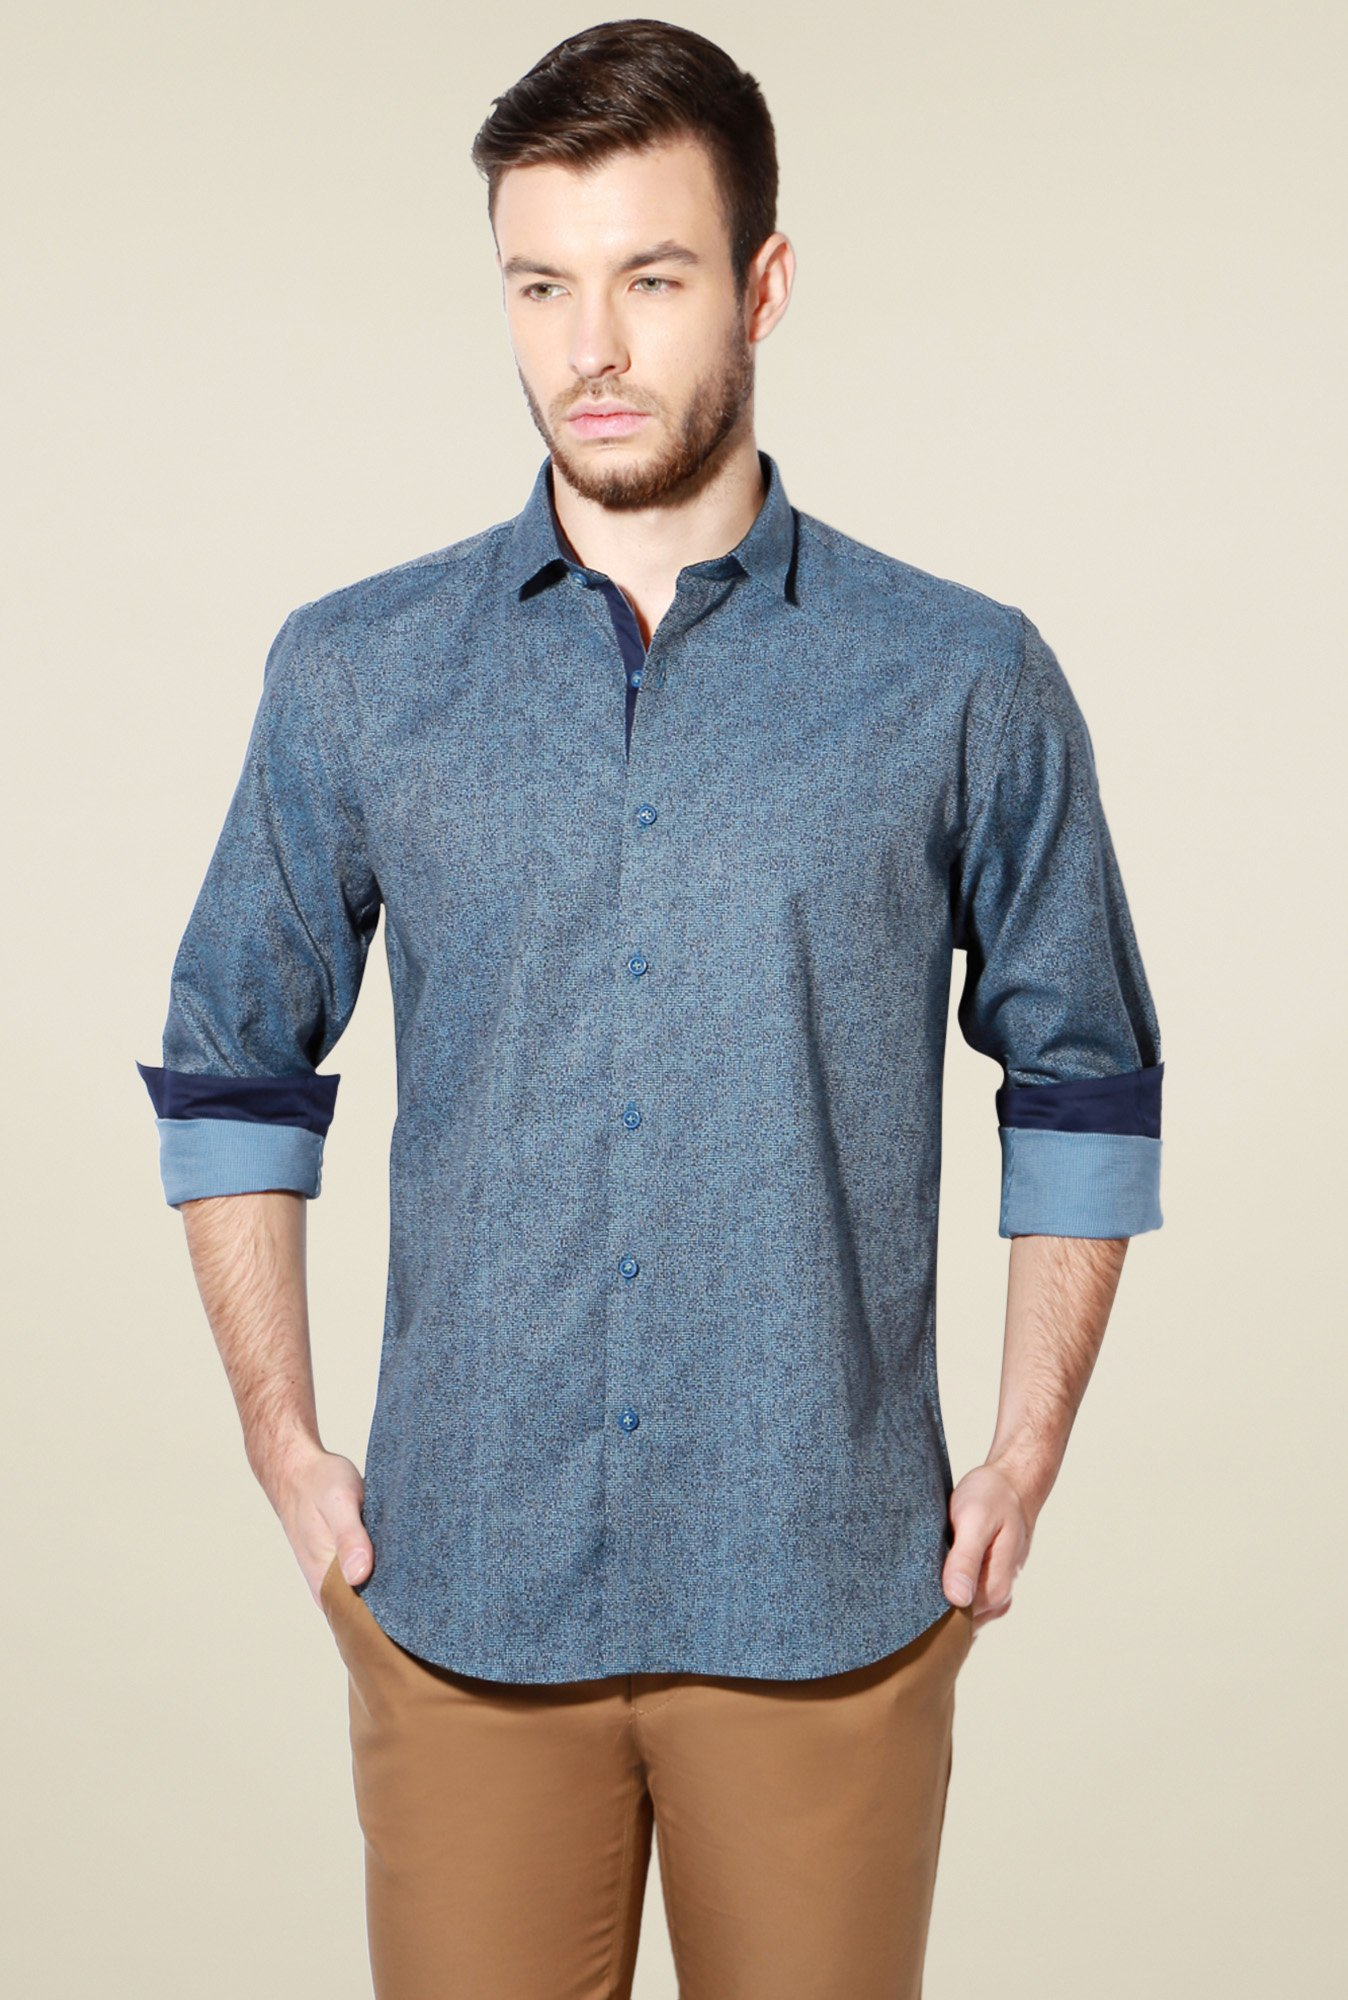 Van Heusen Stone Blue Cotton Shirt